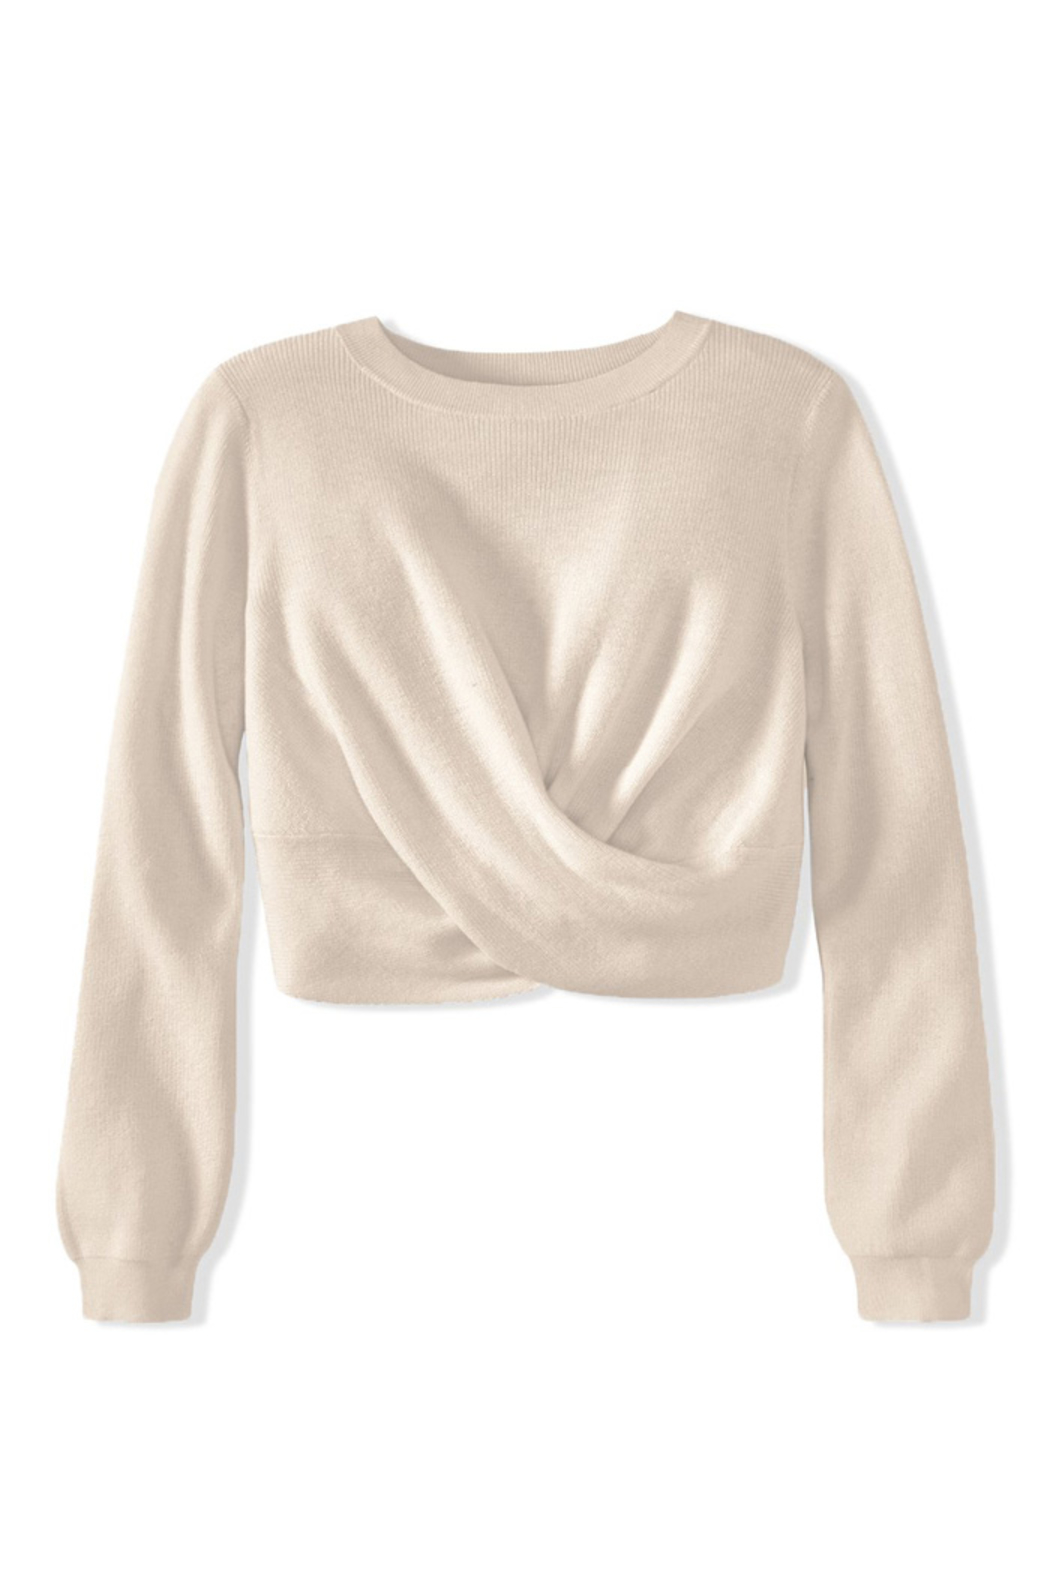 525 America TWIST TOP SWEATER PULLOVER - Side Cropped Image